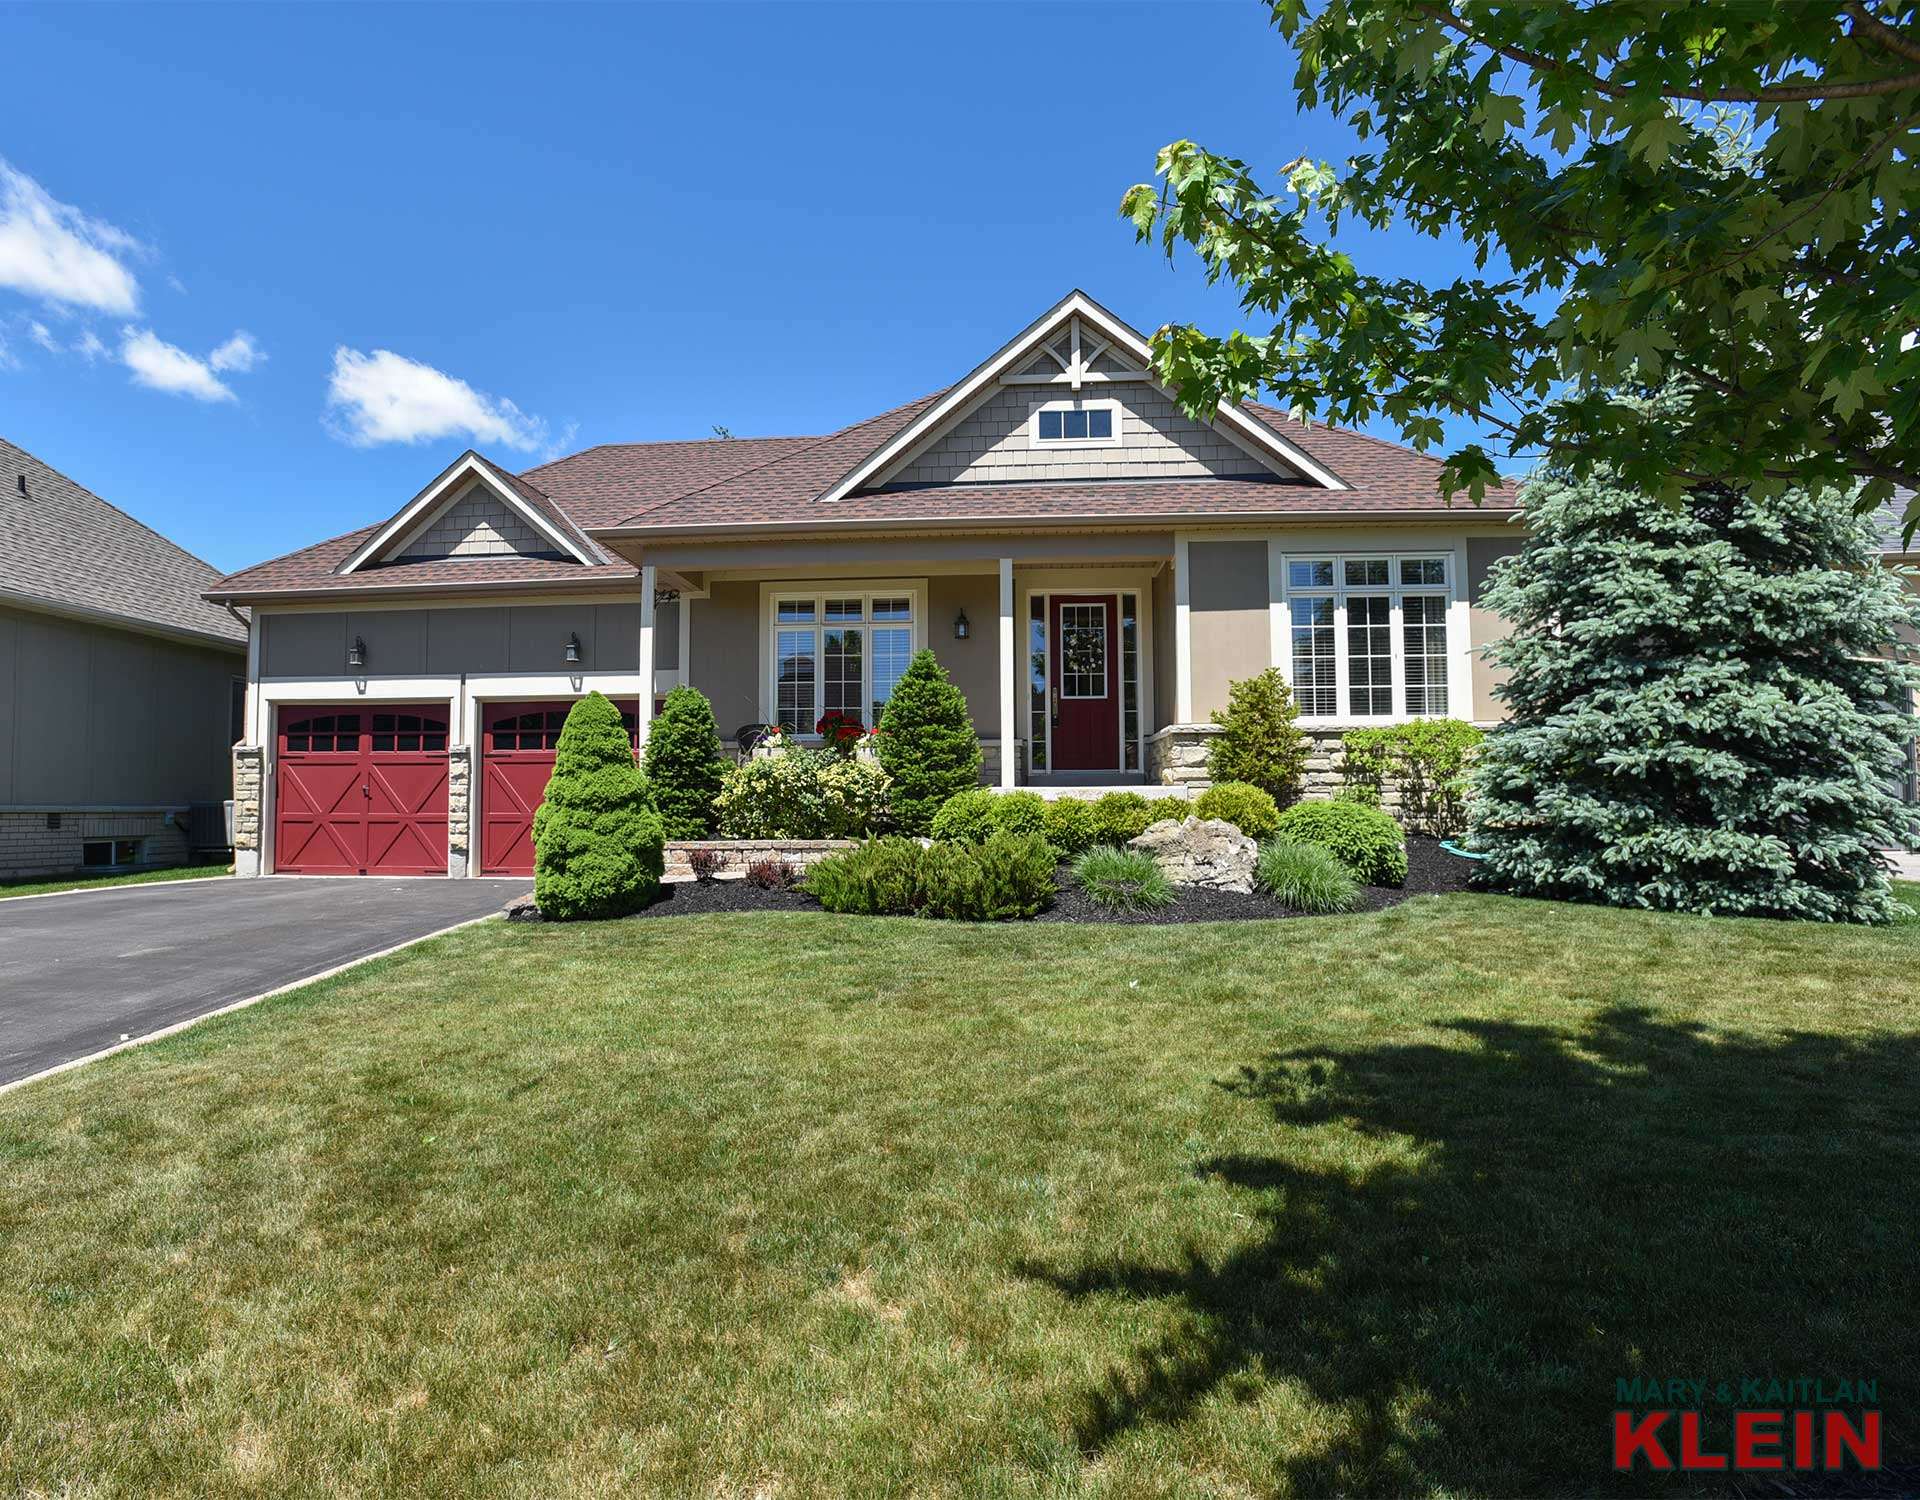 19 Young Court, Orangeville, Home for sale, Klein Team